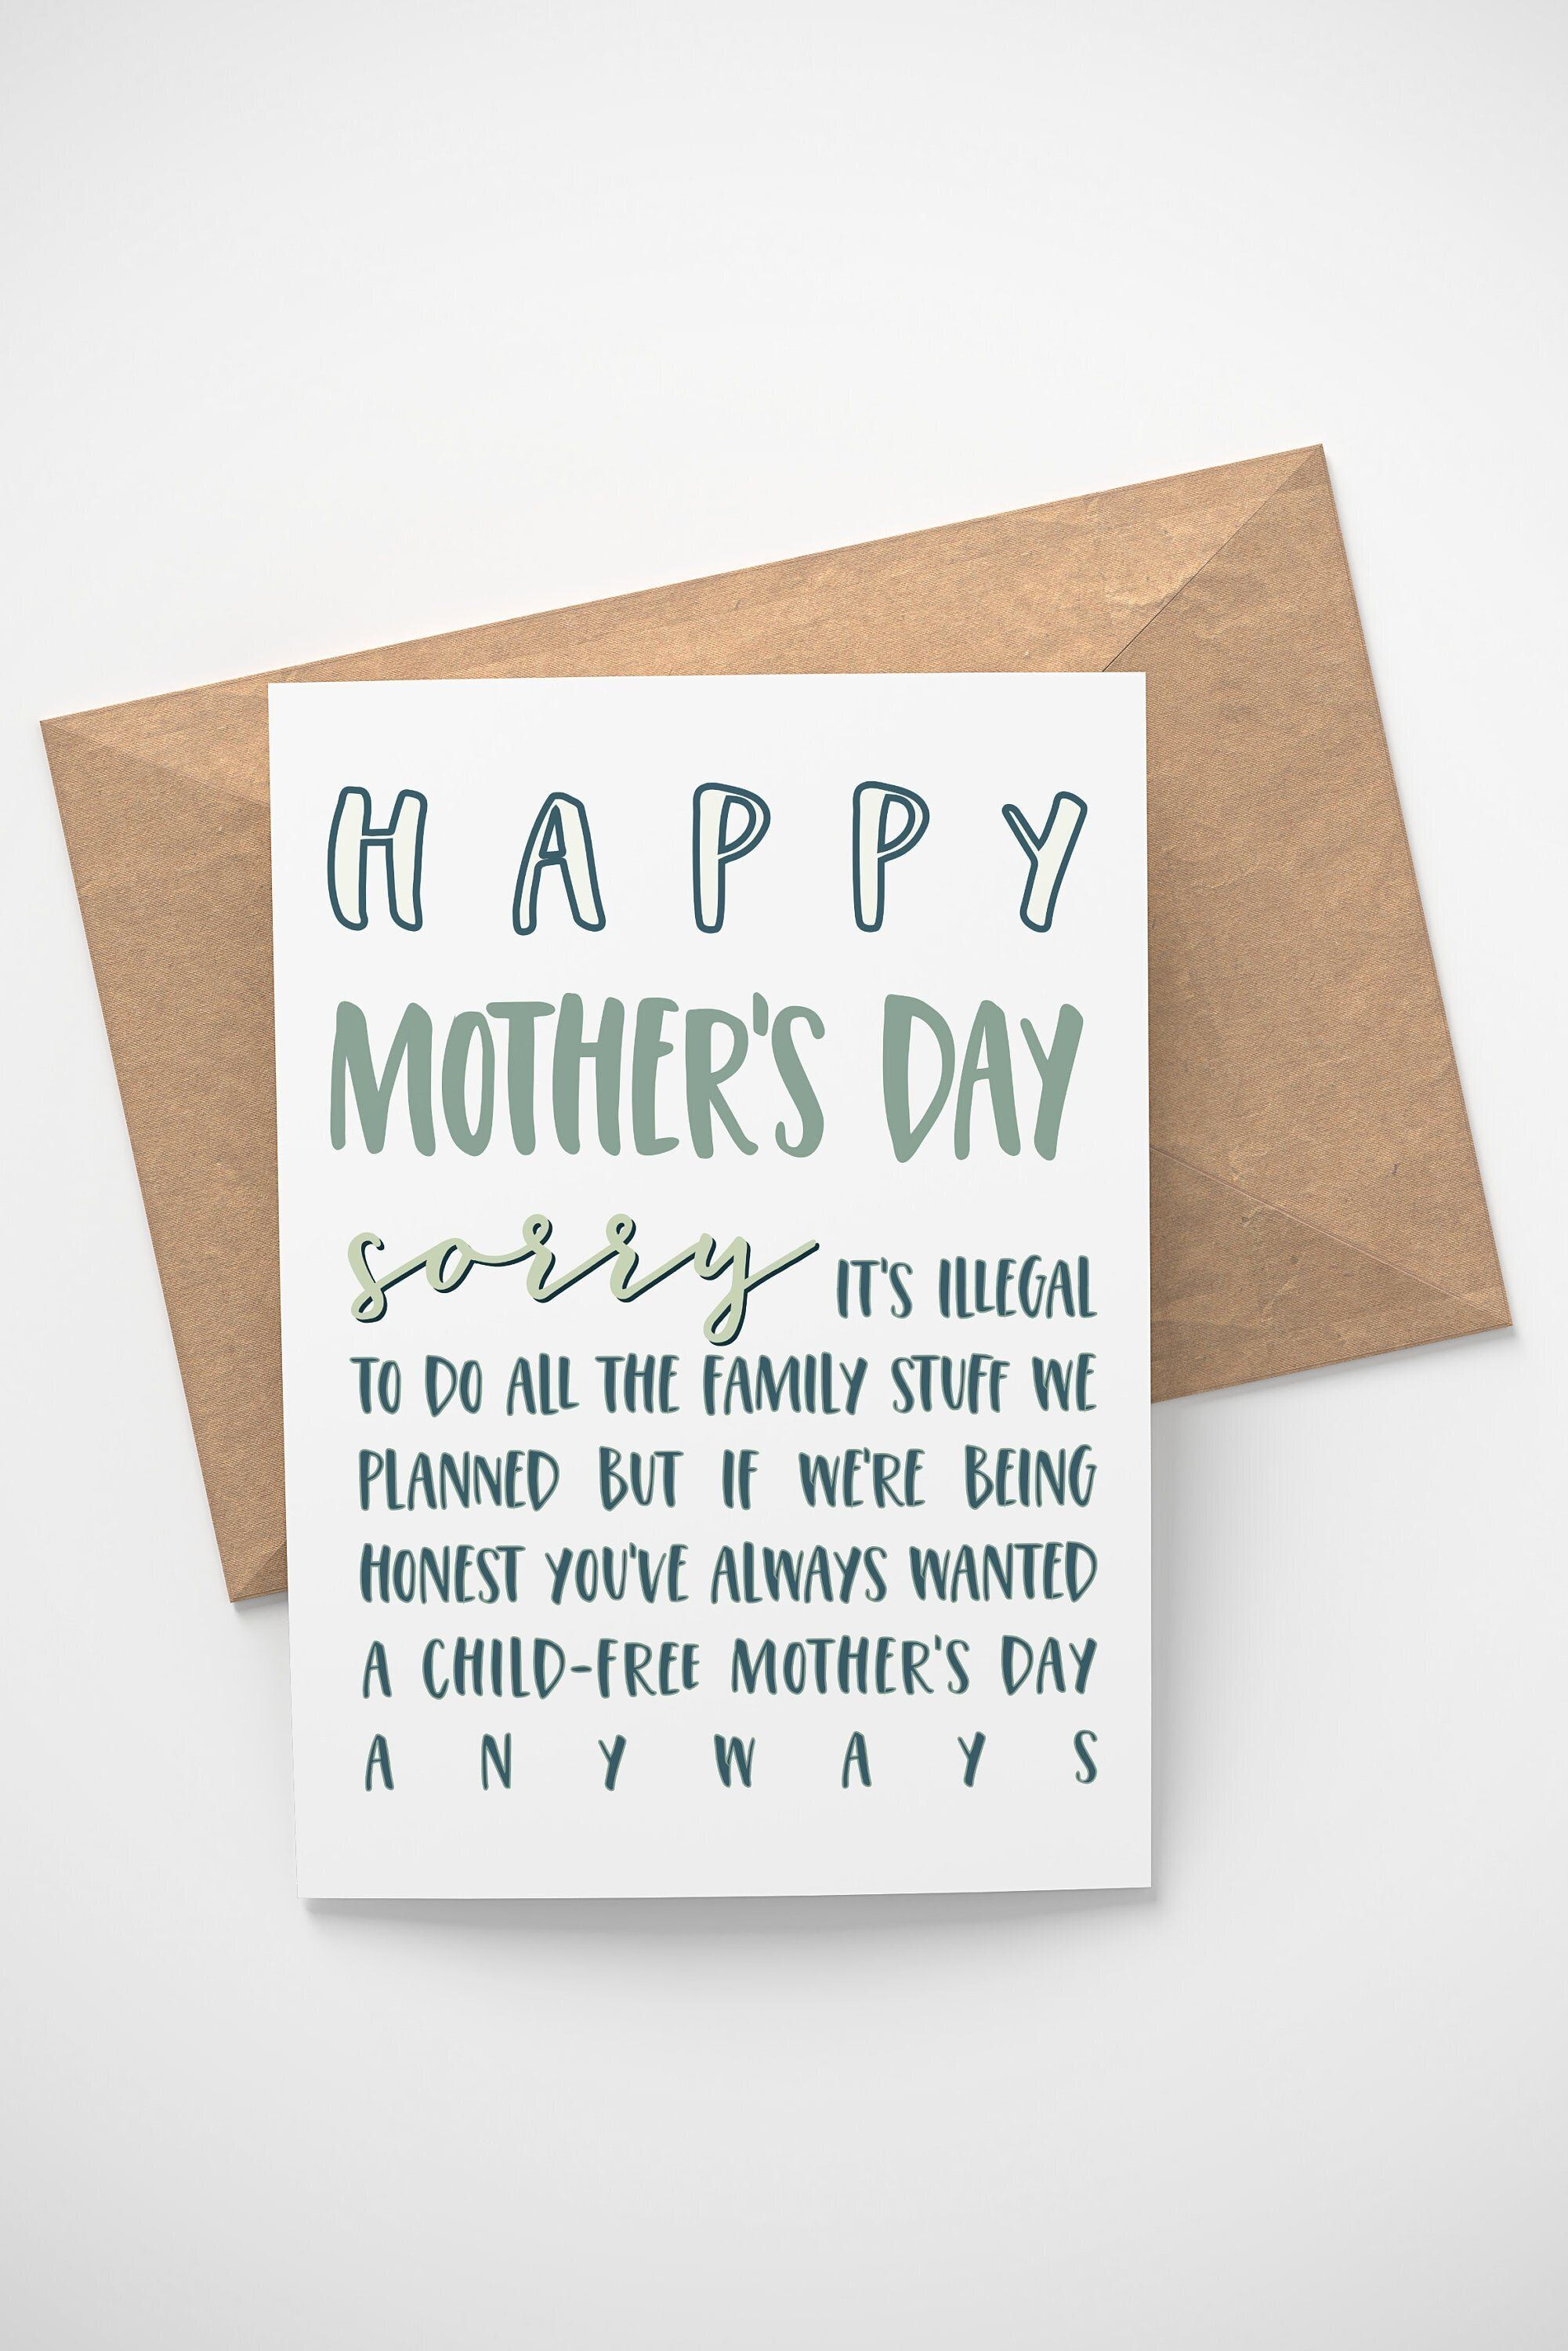 Roll Safe Meme Card Funny Happy Mothers Day Card RS Meme Card for mothers day